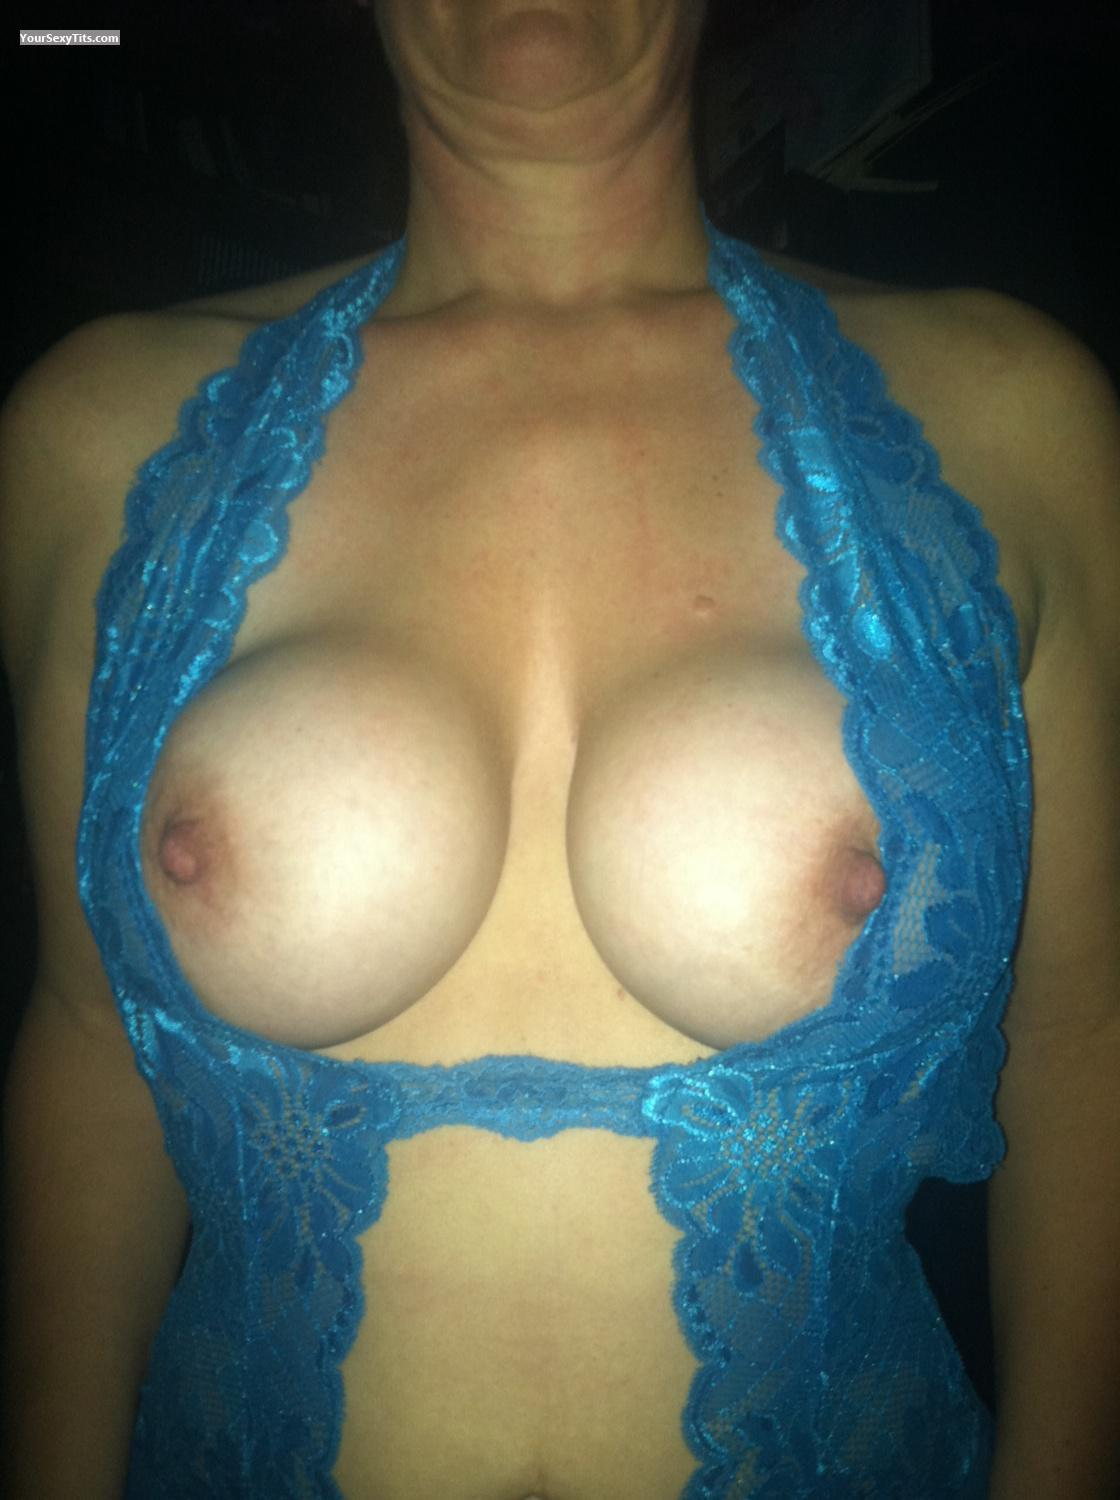 Tit Flash: Big Tits By IPhone - Boobala from United States